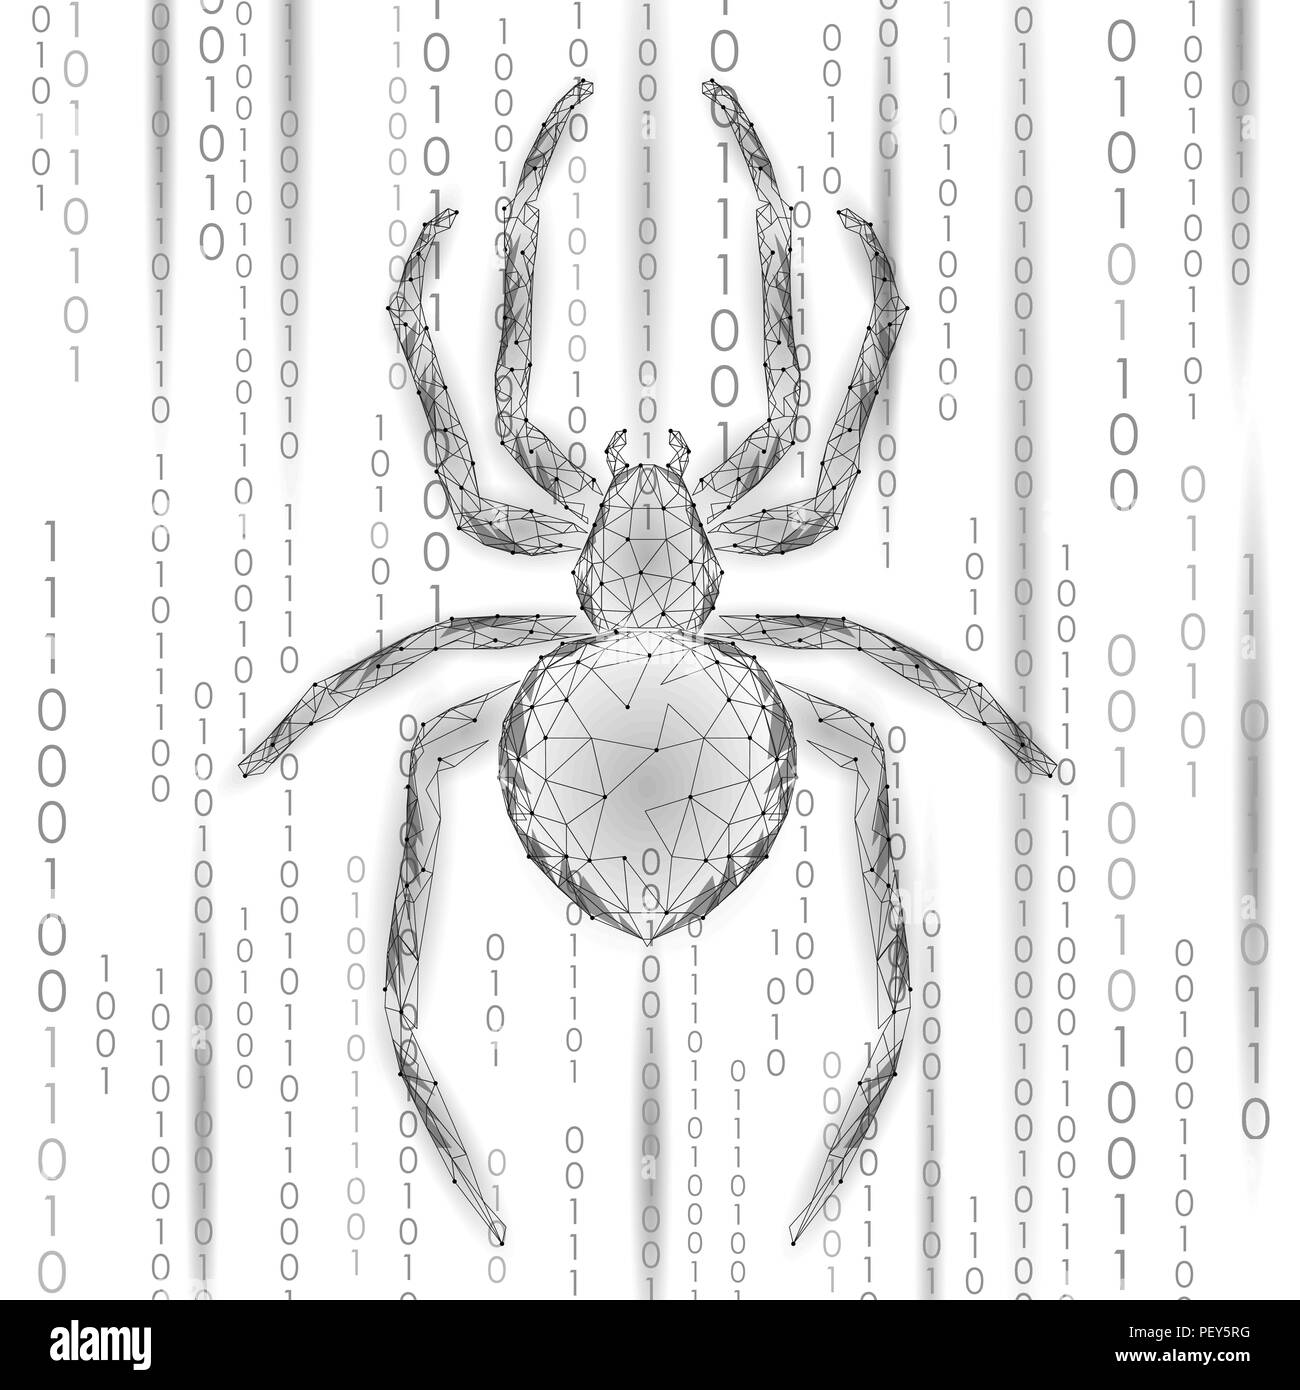 Low poly spider hacker attack danger. Web security virus data safety antivirus concept. Polygonal modern design business concept. Cyber crime web insect bug technology vector illustration - Stock Vector